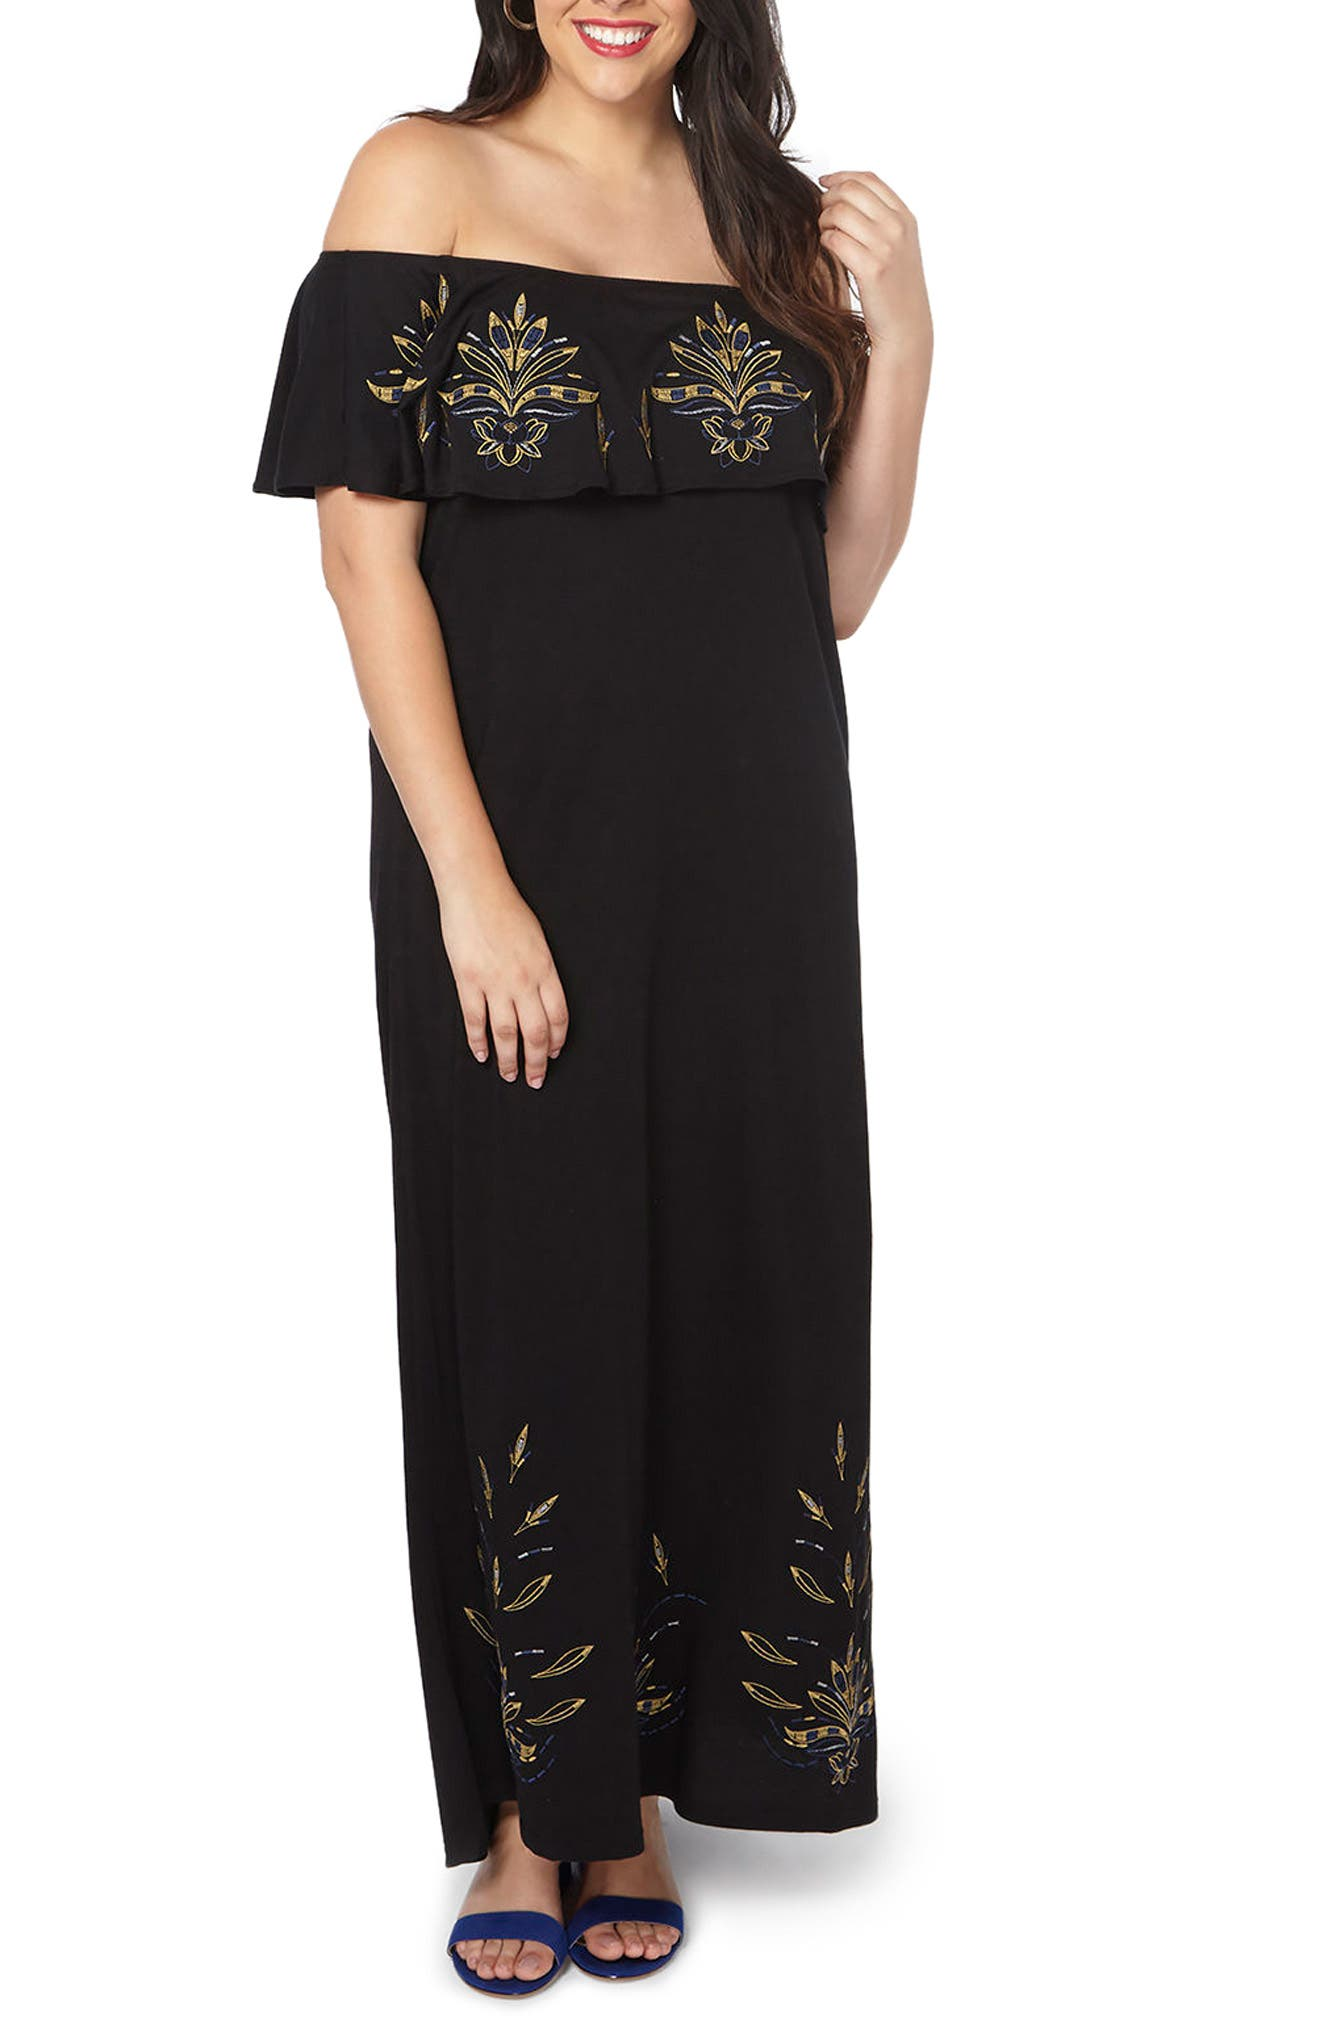 Alternate Image 1 Selected - Evans Embroidered Off the Shoulder Maxi Dress (Plus Size)